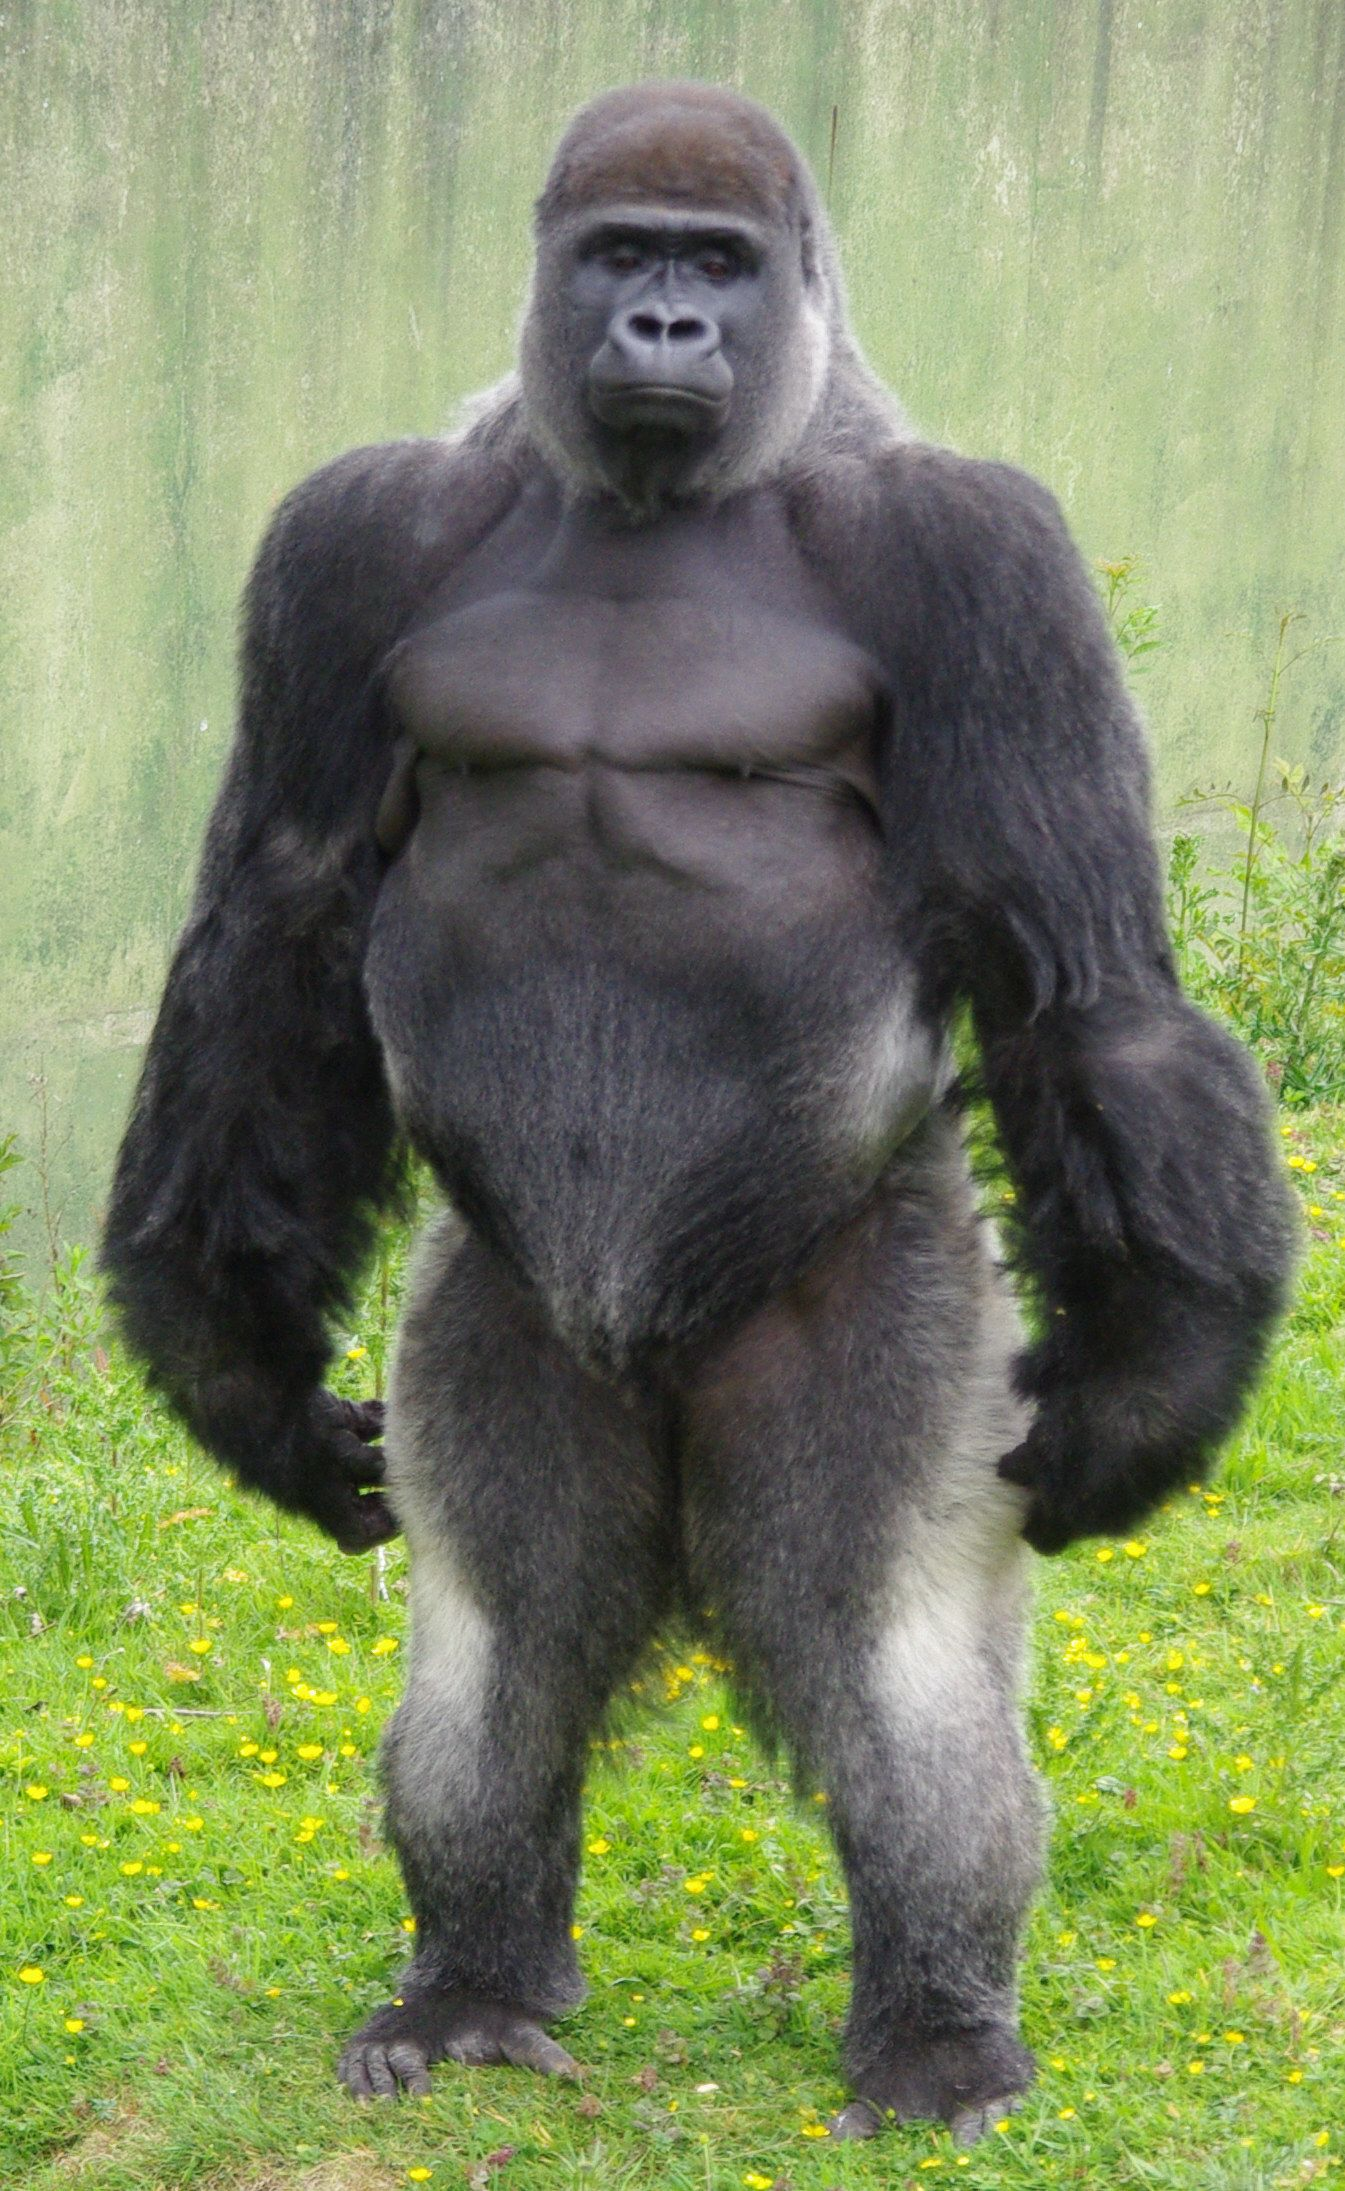 Gorilla standing up - photo#35